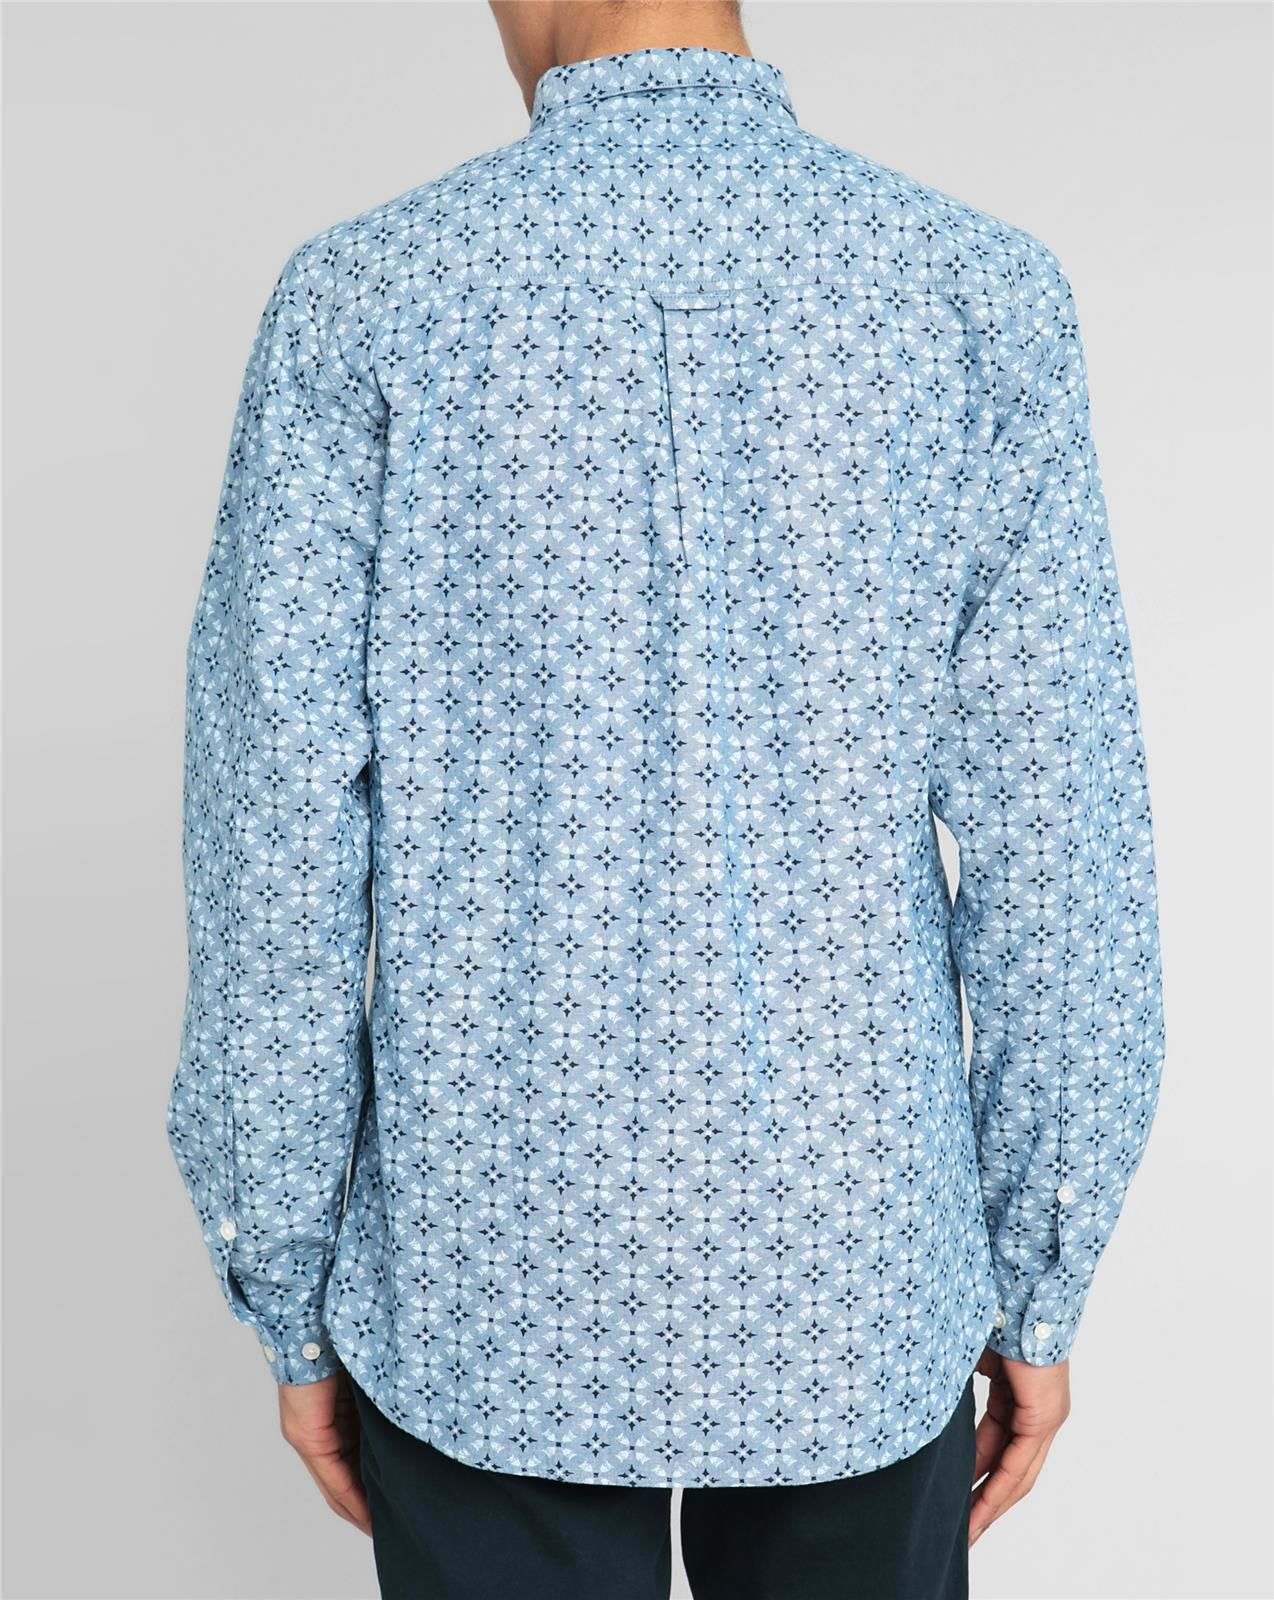 knowledge cotton apparel diamond pattern chambray shirt in blue for men lyst. Black Bedroom Furniture Sets. Home Design Ideas